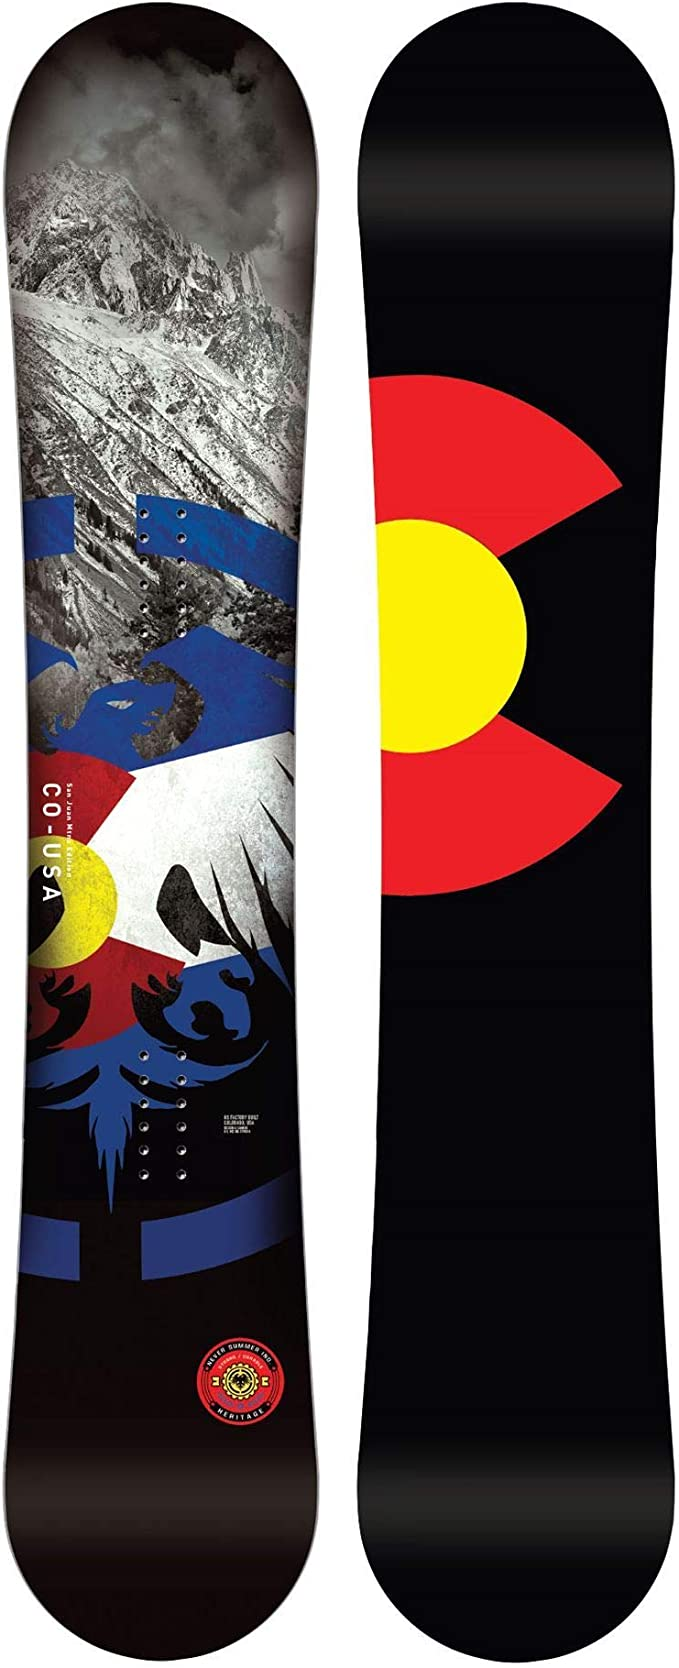 Amazon.com : Never Summer Heritage Snowboard (155) : Sports & Outdoors